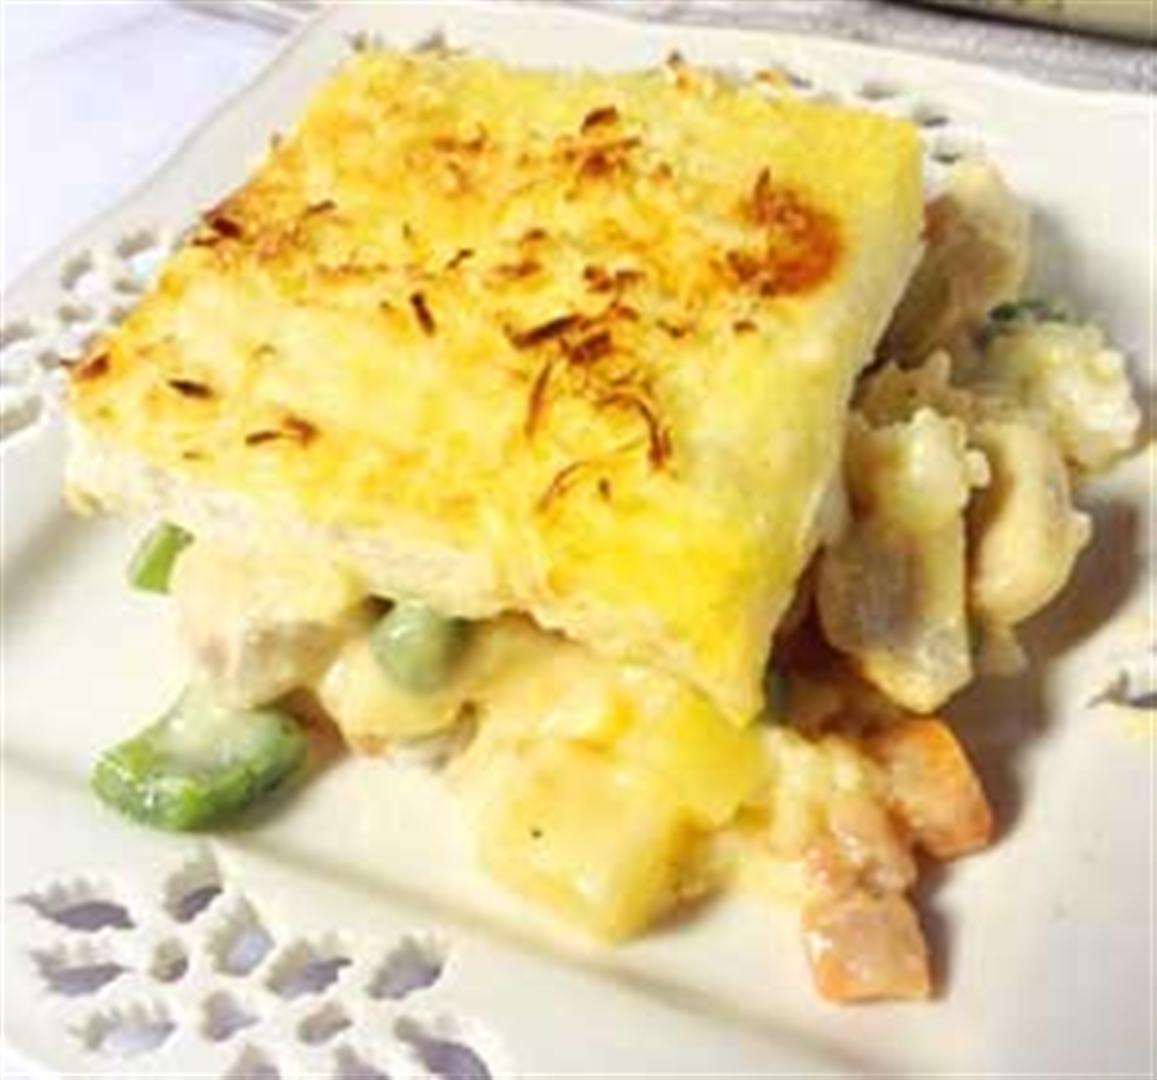 Baked cheesy chicken pastel recipe panlasang pinoy recipes forumfinder Gallery